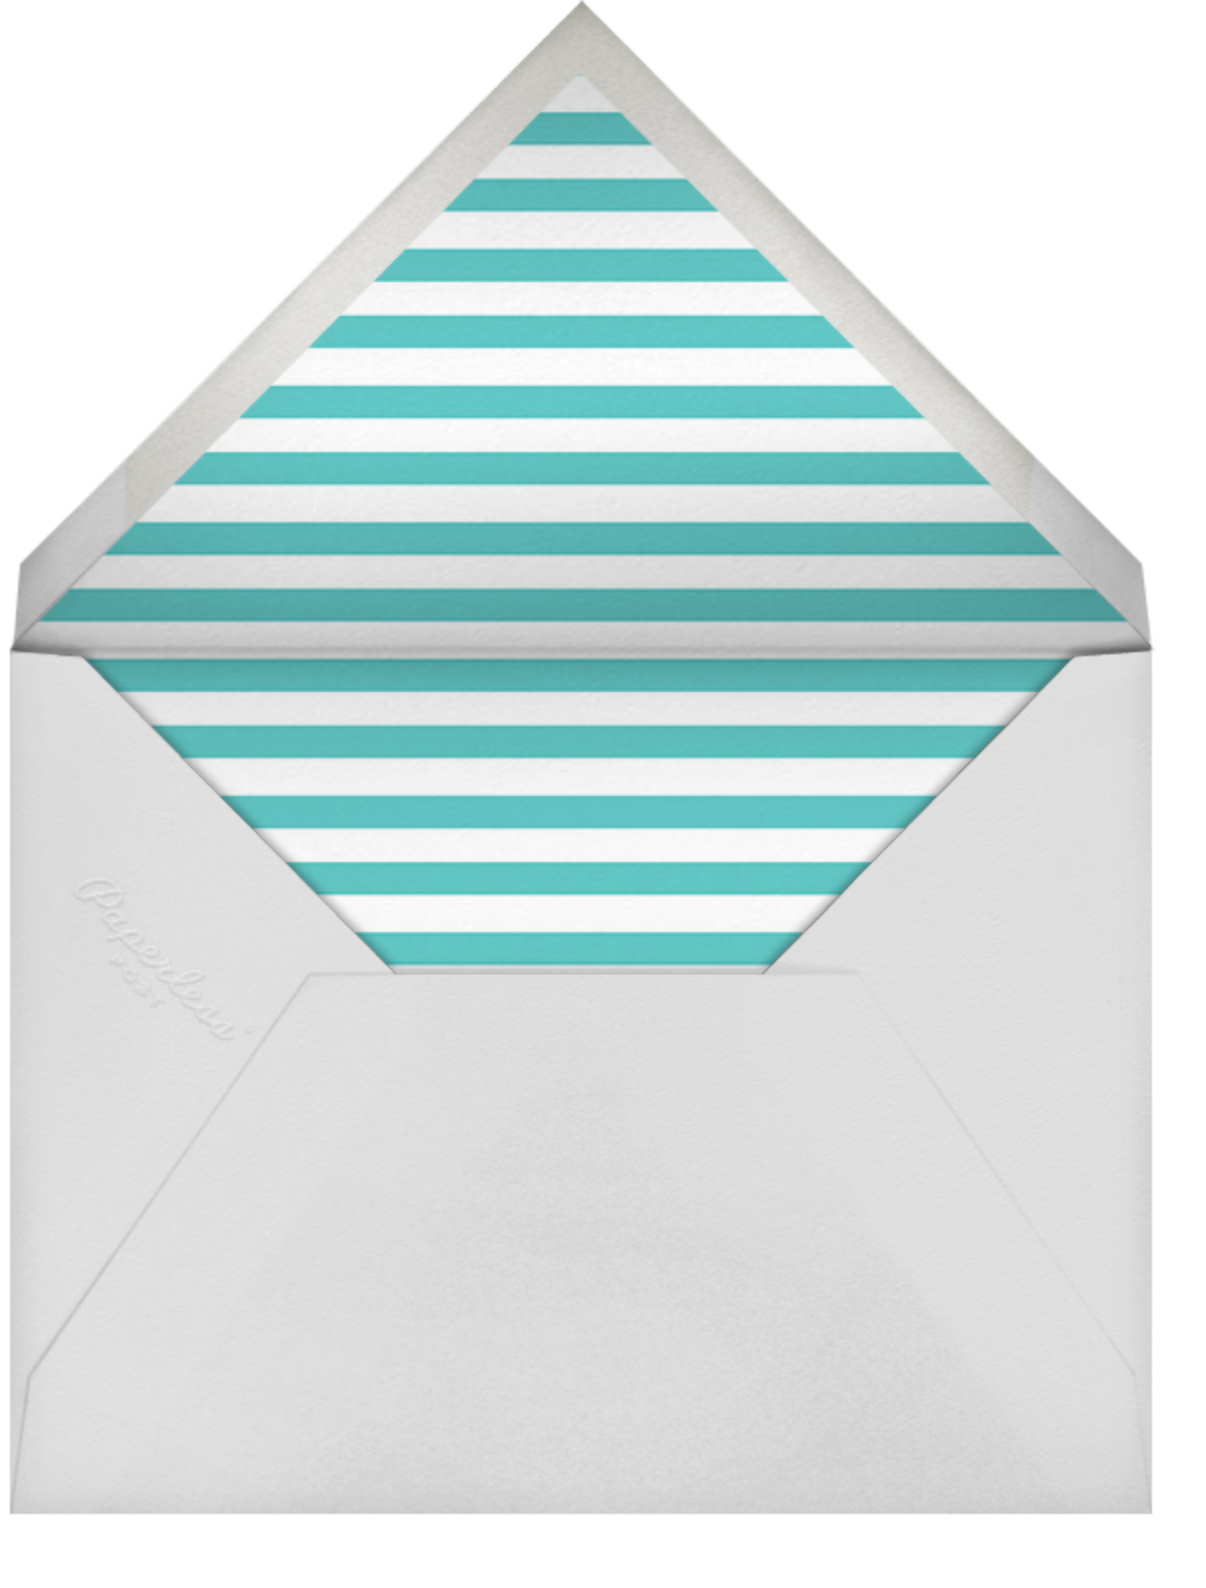 Confetti - Aqua/Gold - kate spade new york - Engagement party - envelope back